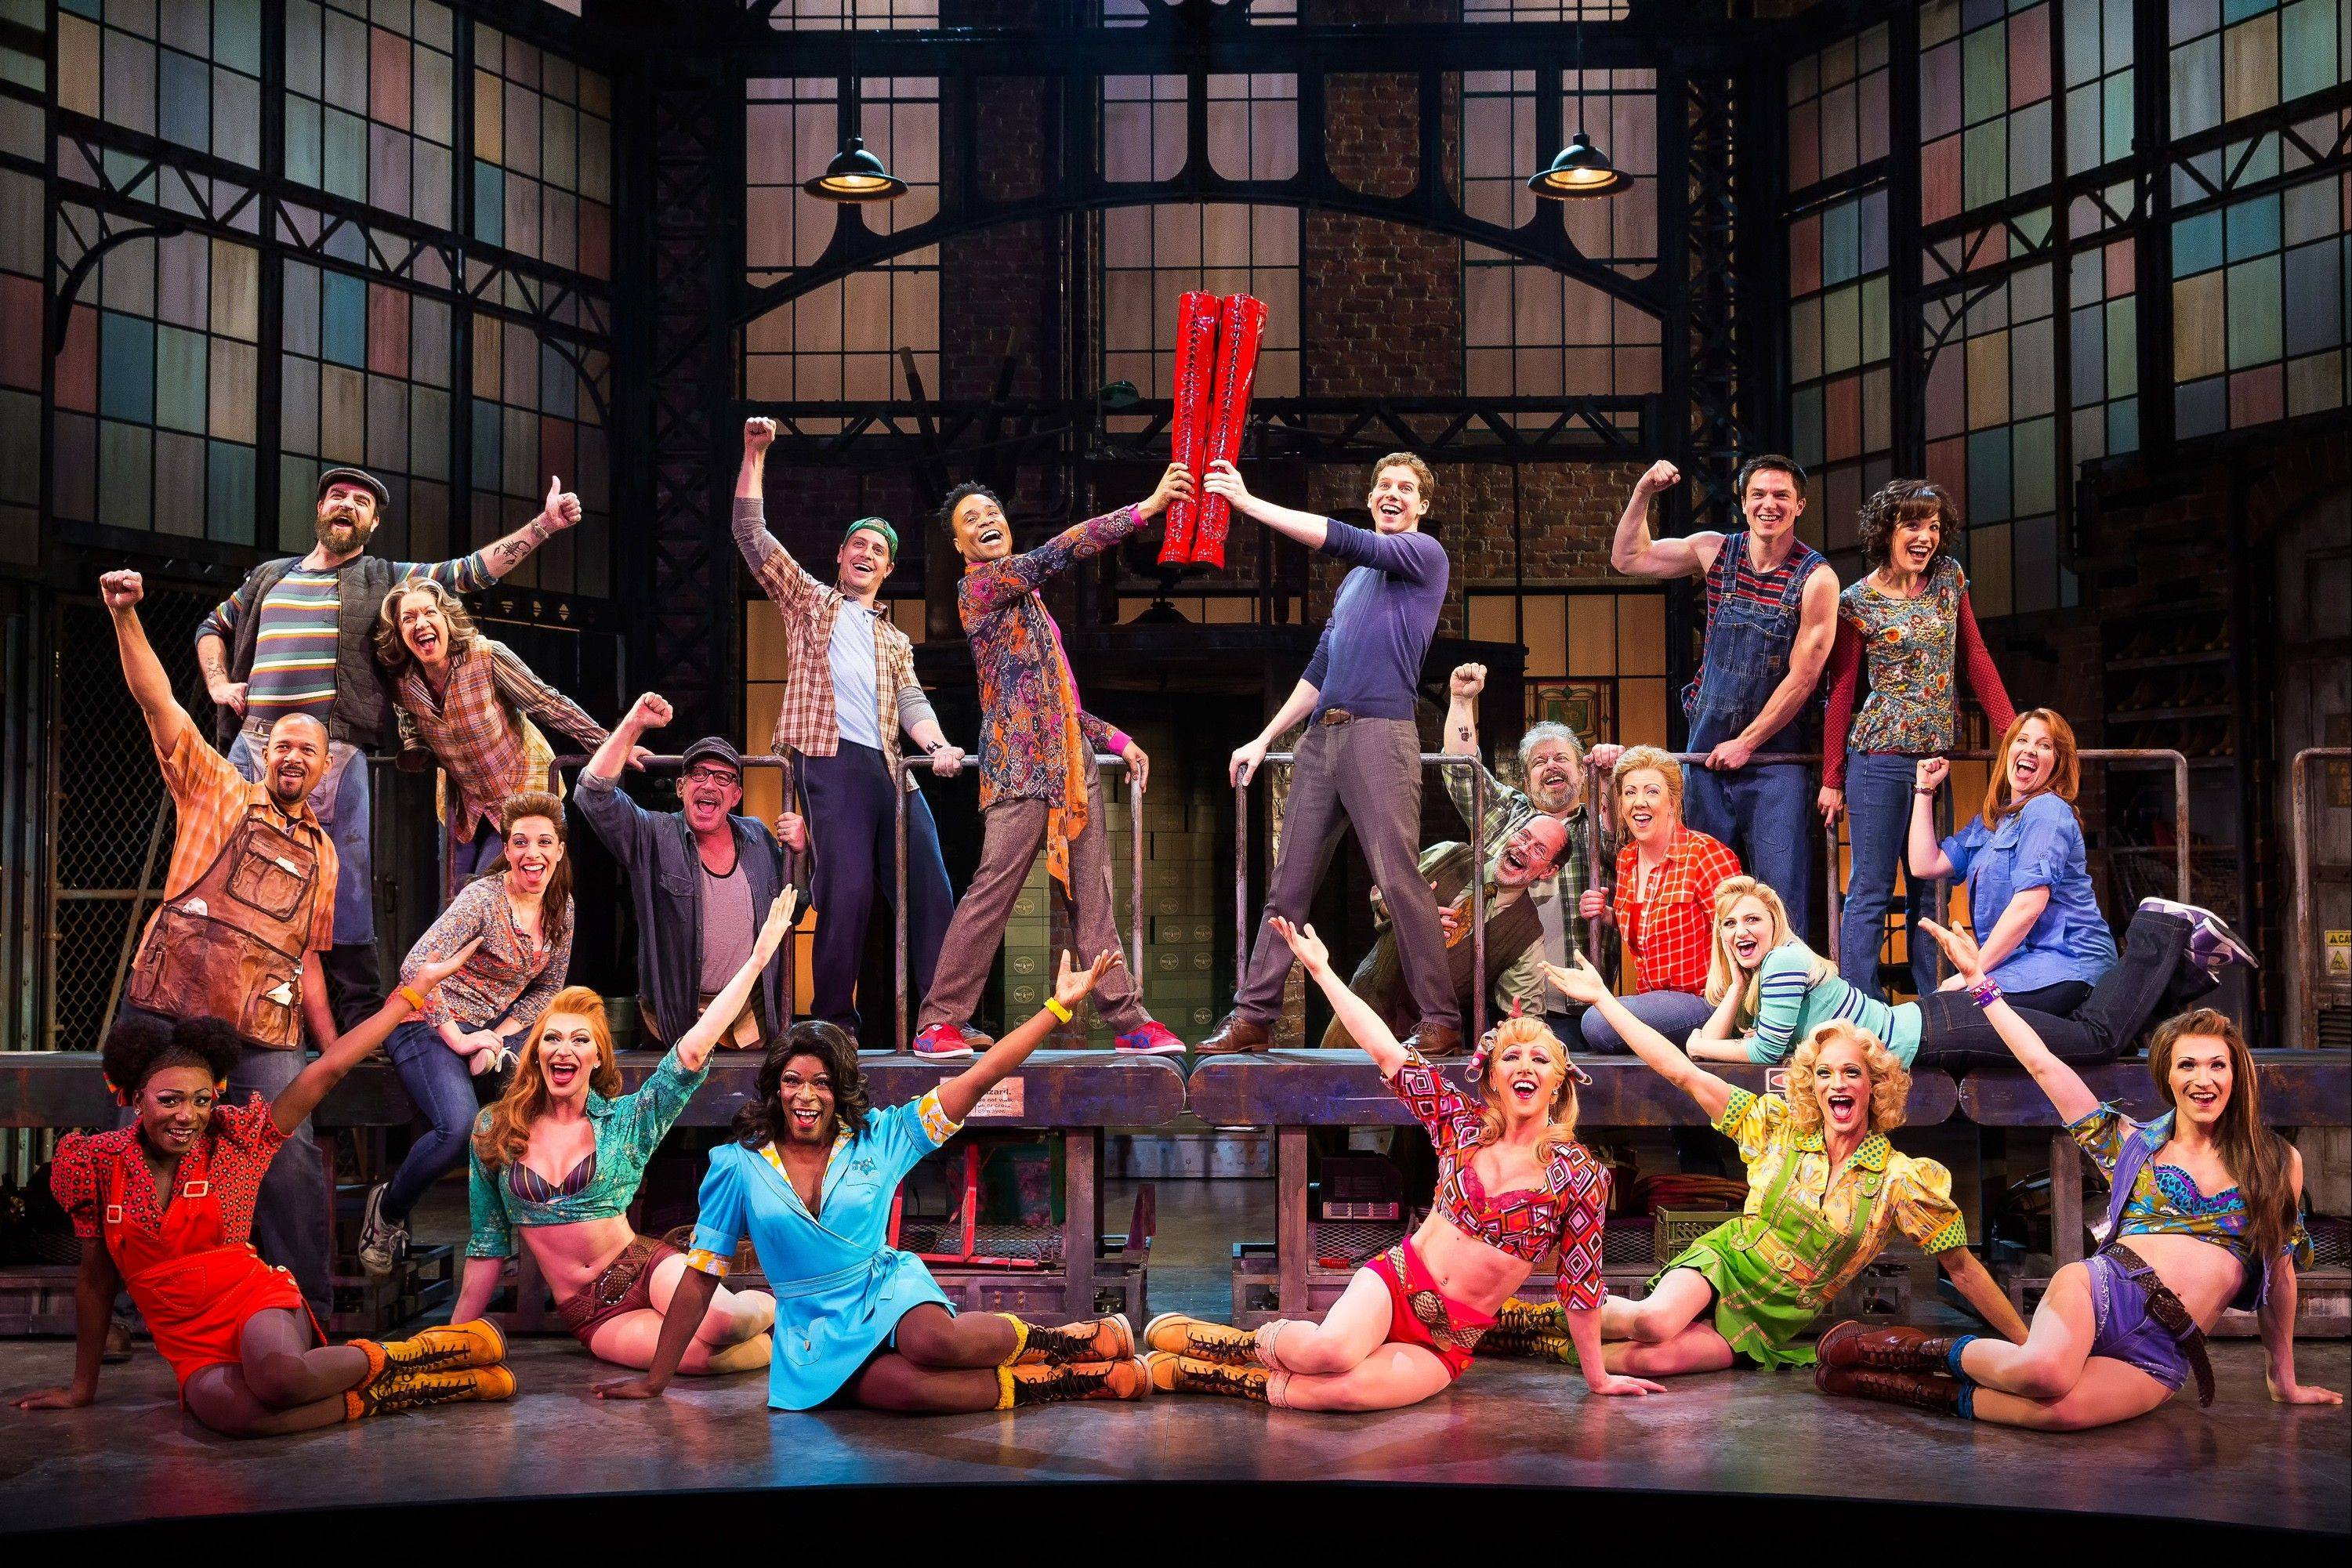 'Kinky Boots' leads with 13 Tony Award noms